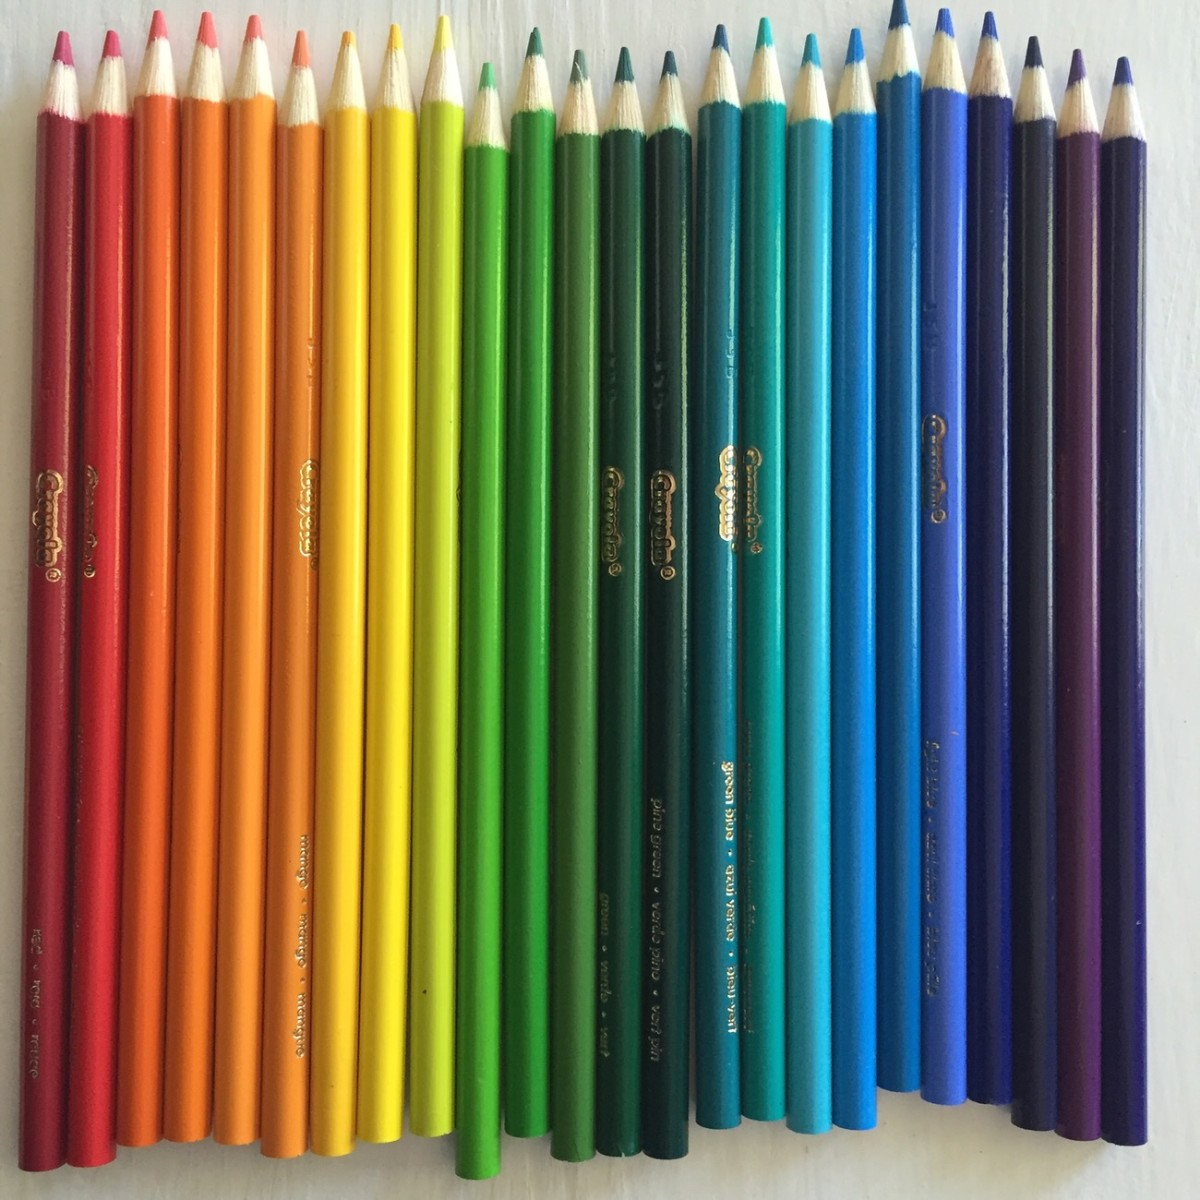 {Freshly sharpened colored pencils}